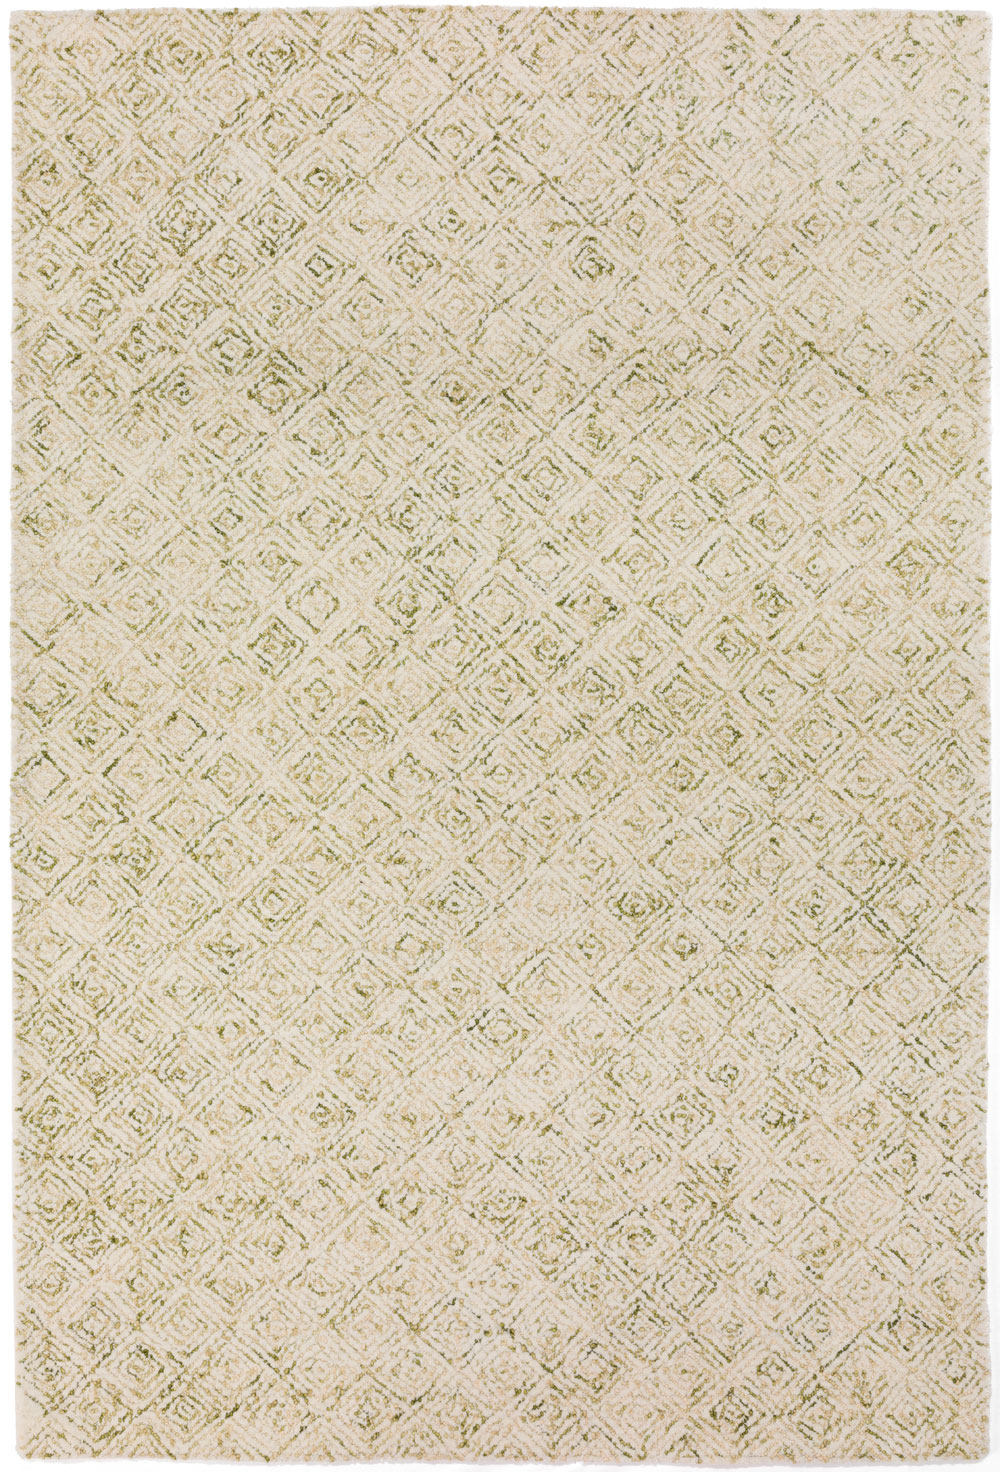 Dalyn Zoe ZZ1 Lime Rug